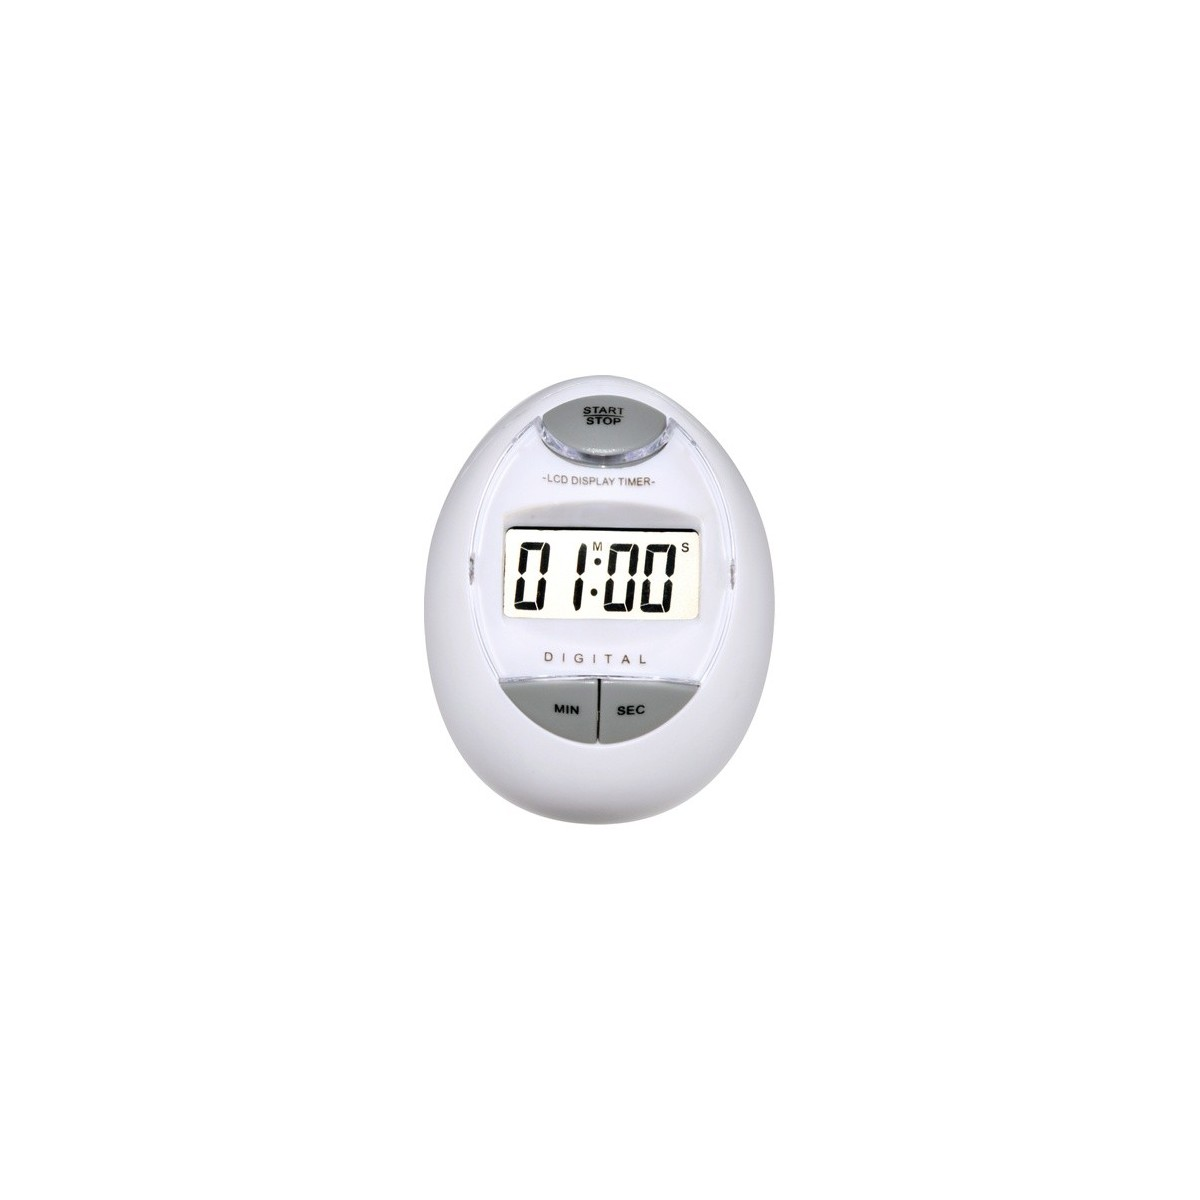 Fremragende Nordic Quality Digital Minutur Salt CZ04